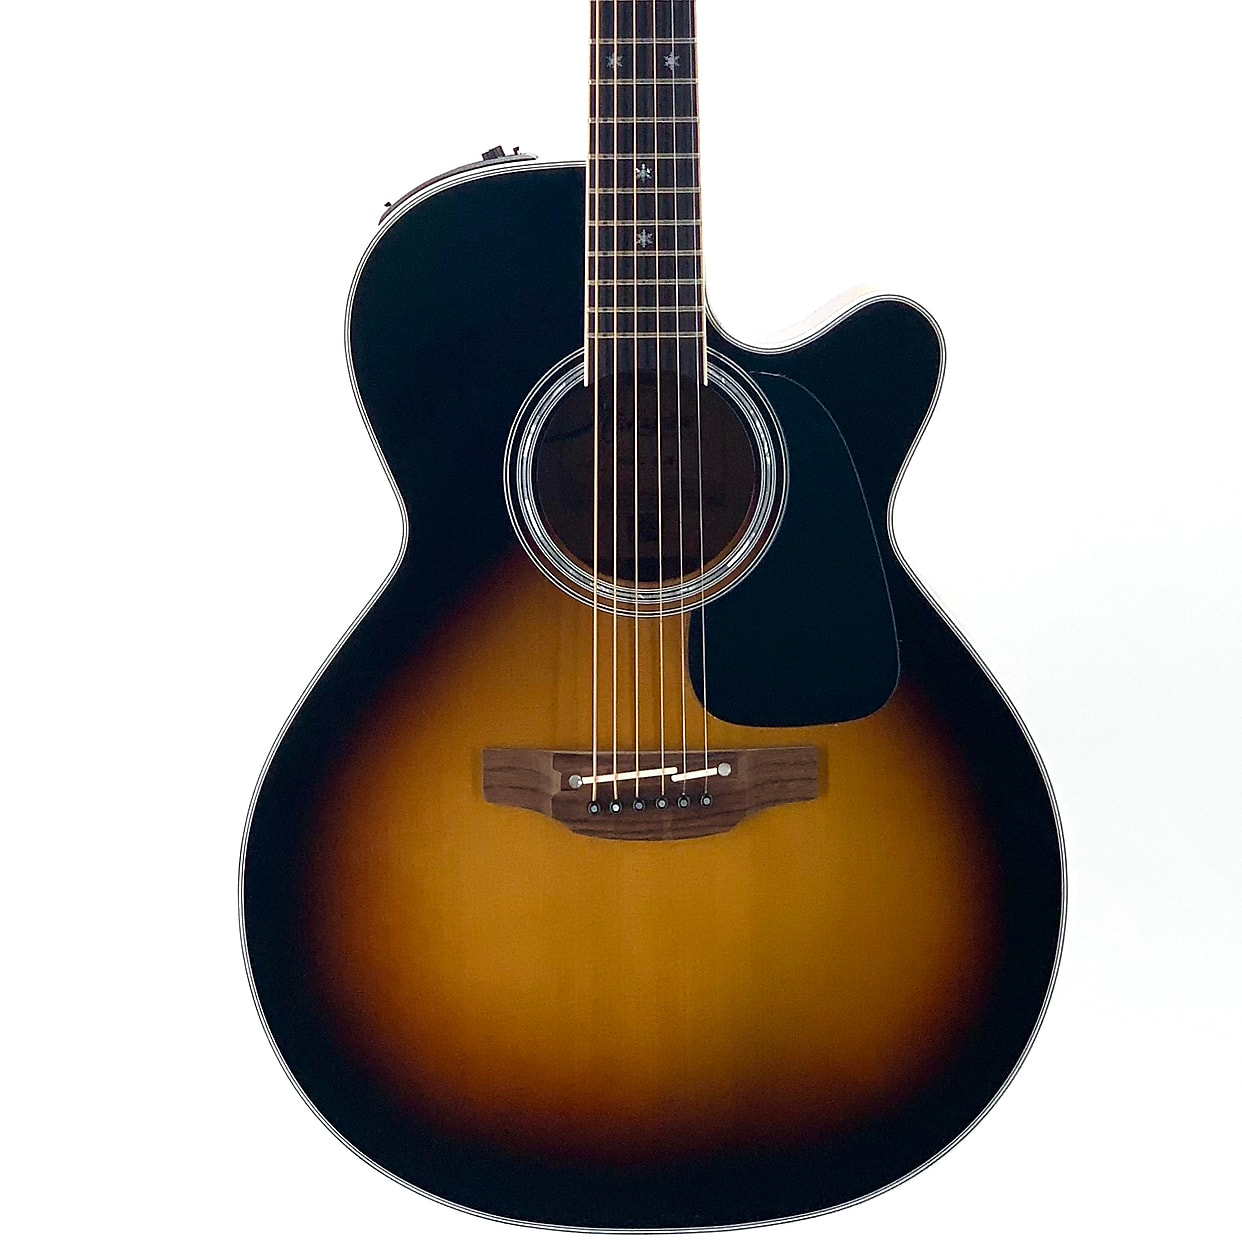 Takamine P6NC-BSB Acoustic-Electric Guitar Brand New Full Warranty Hardshell Case - Free Shipping!